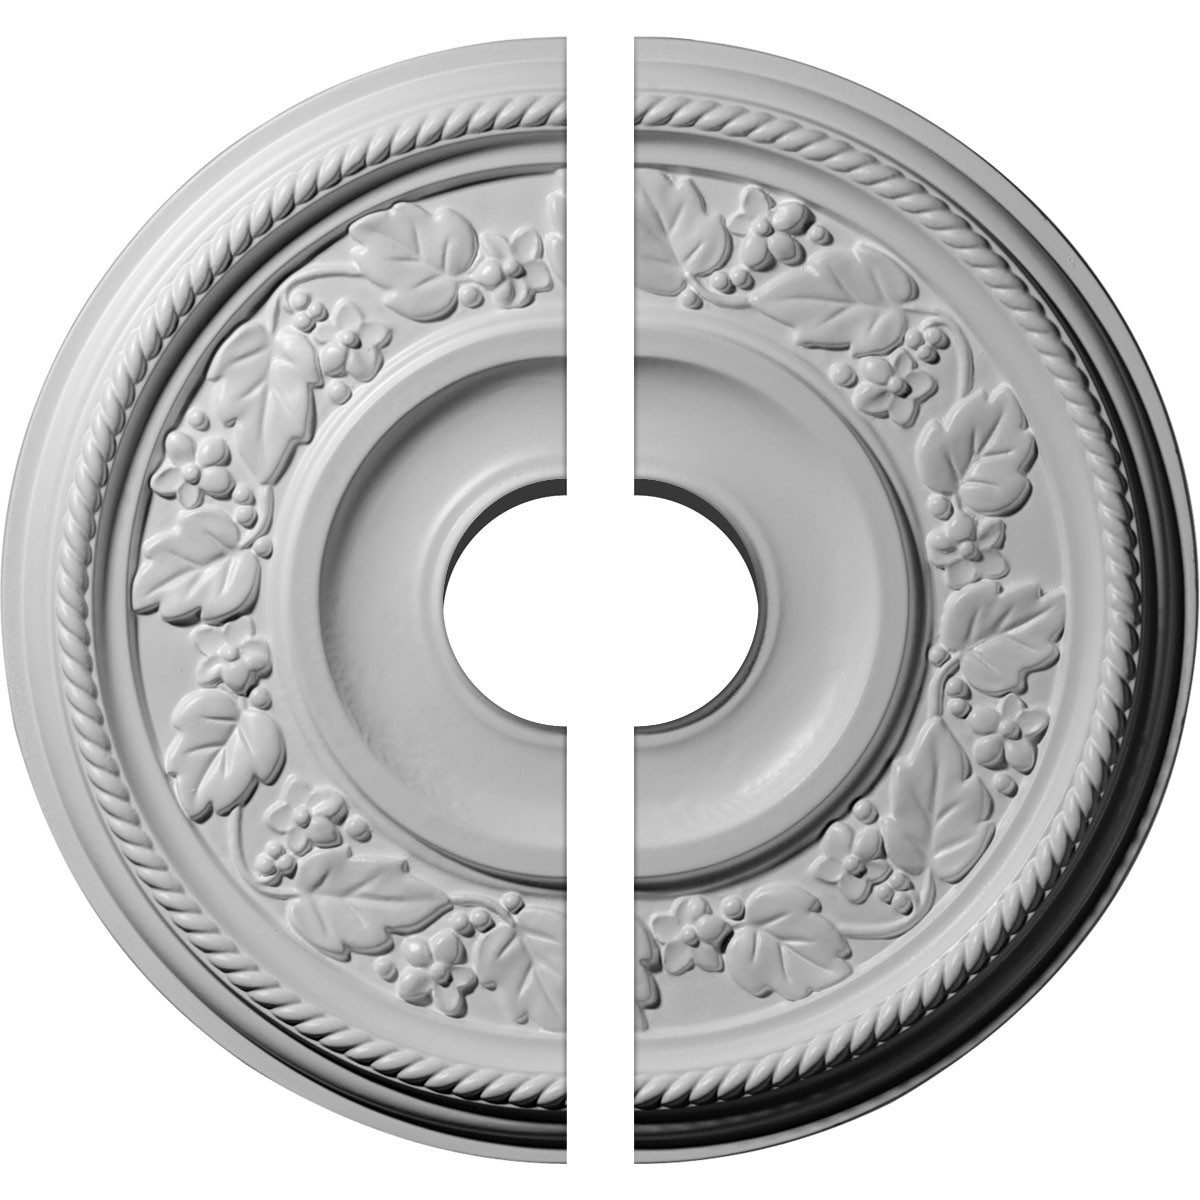 """EM-CM16TY2-03500 - 16 1/8""""OD x 3 1/2""""ID x 3/4""""P Tyrone Ceiling Medallion, Two Piece (Fits Canopies up to 6 3/4"""")"""